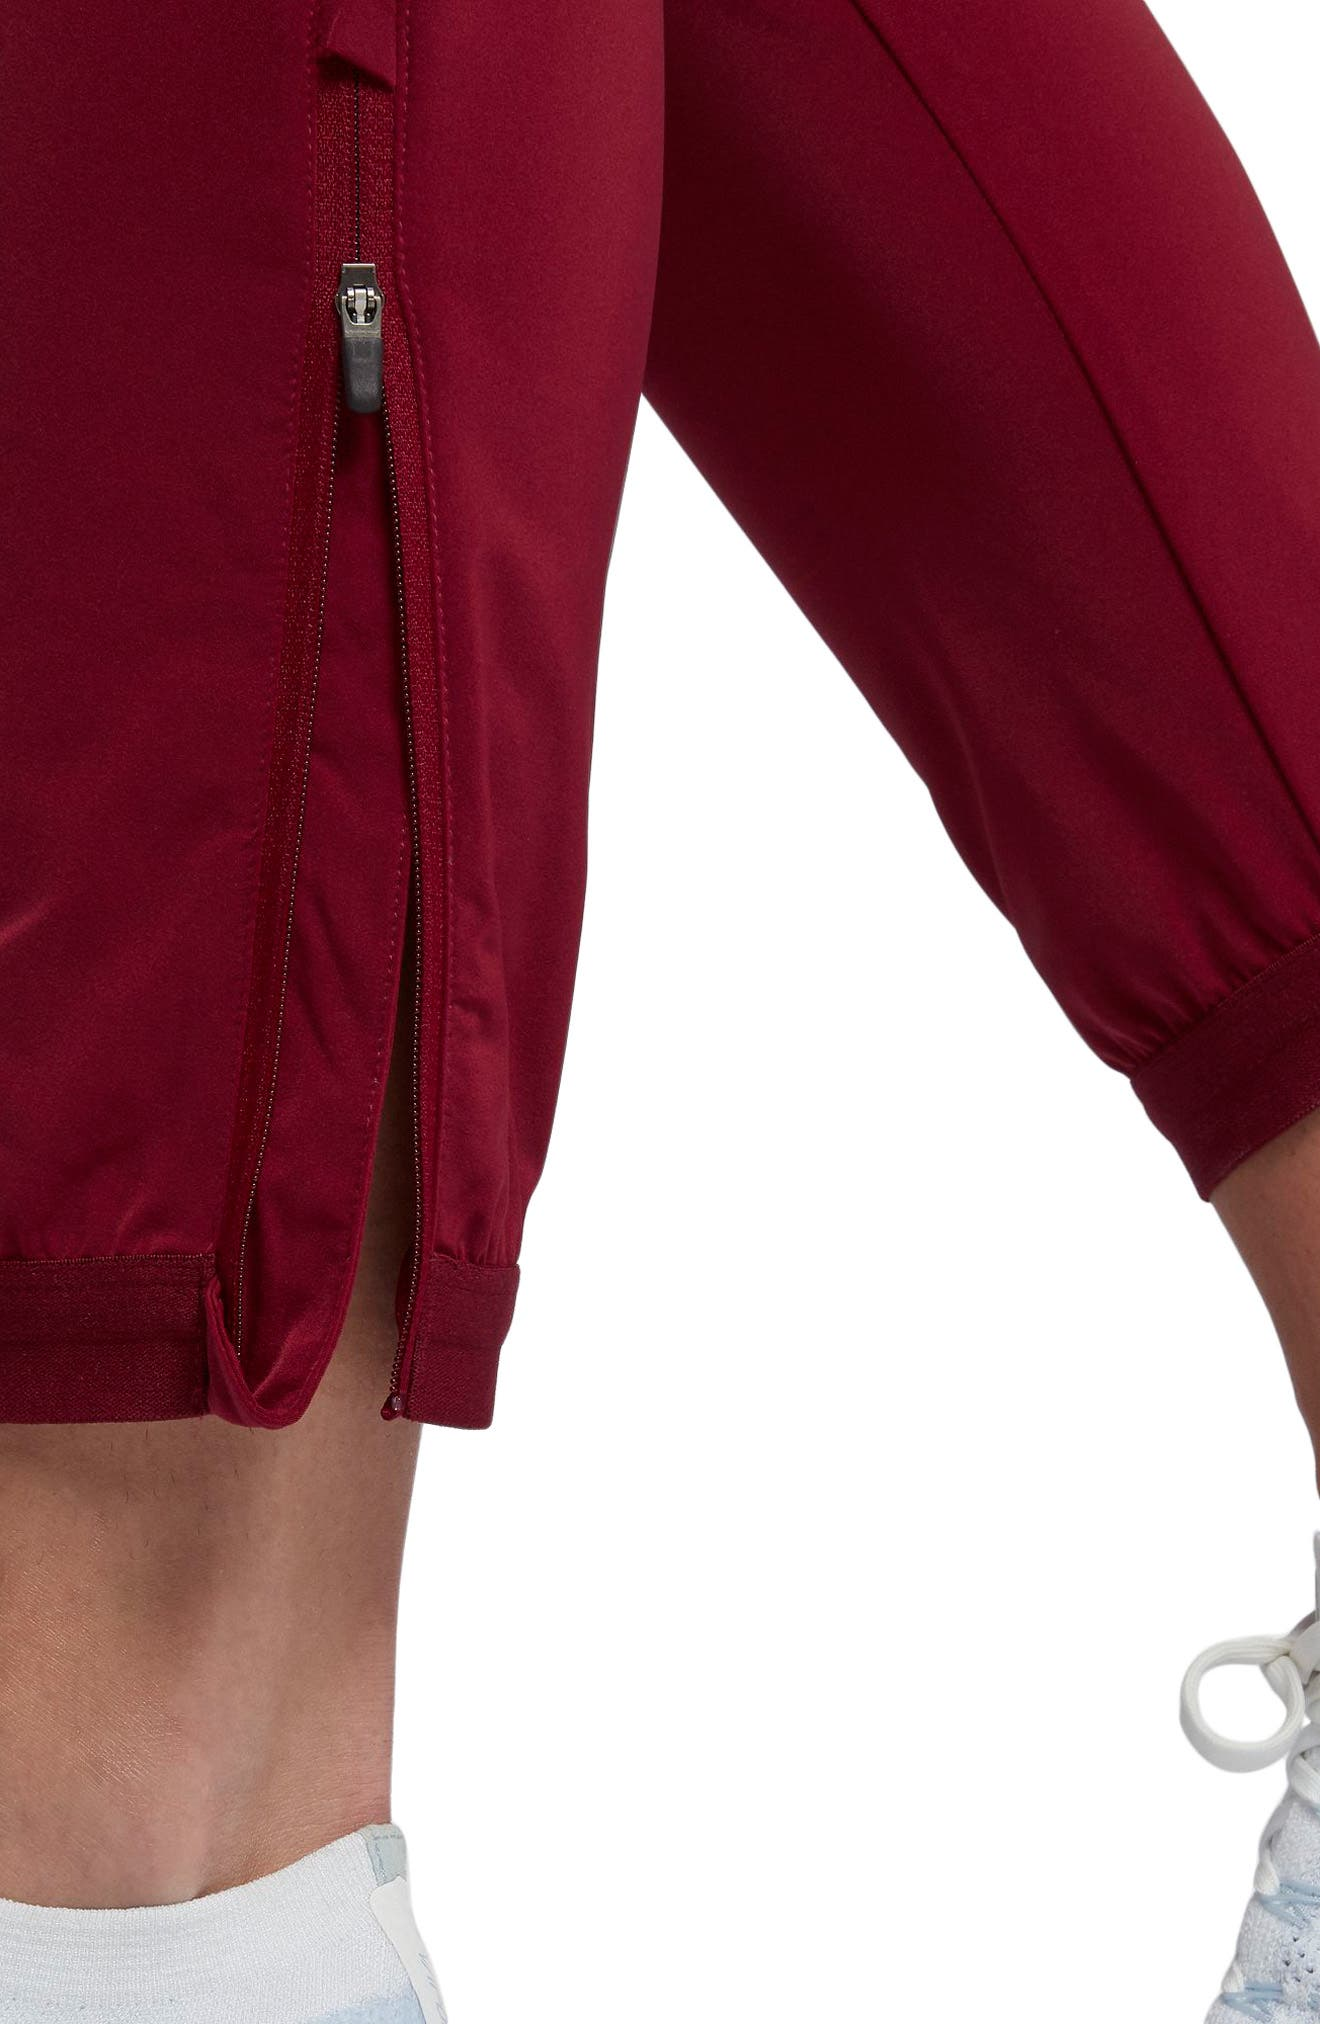 Women's Dry Running Stadium Pants,                             Alternate thumbnail 4, color,                             Team Red/ Vintage Coral